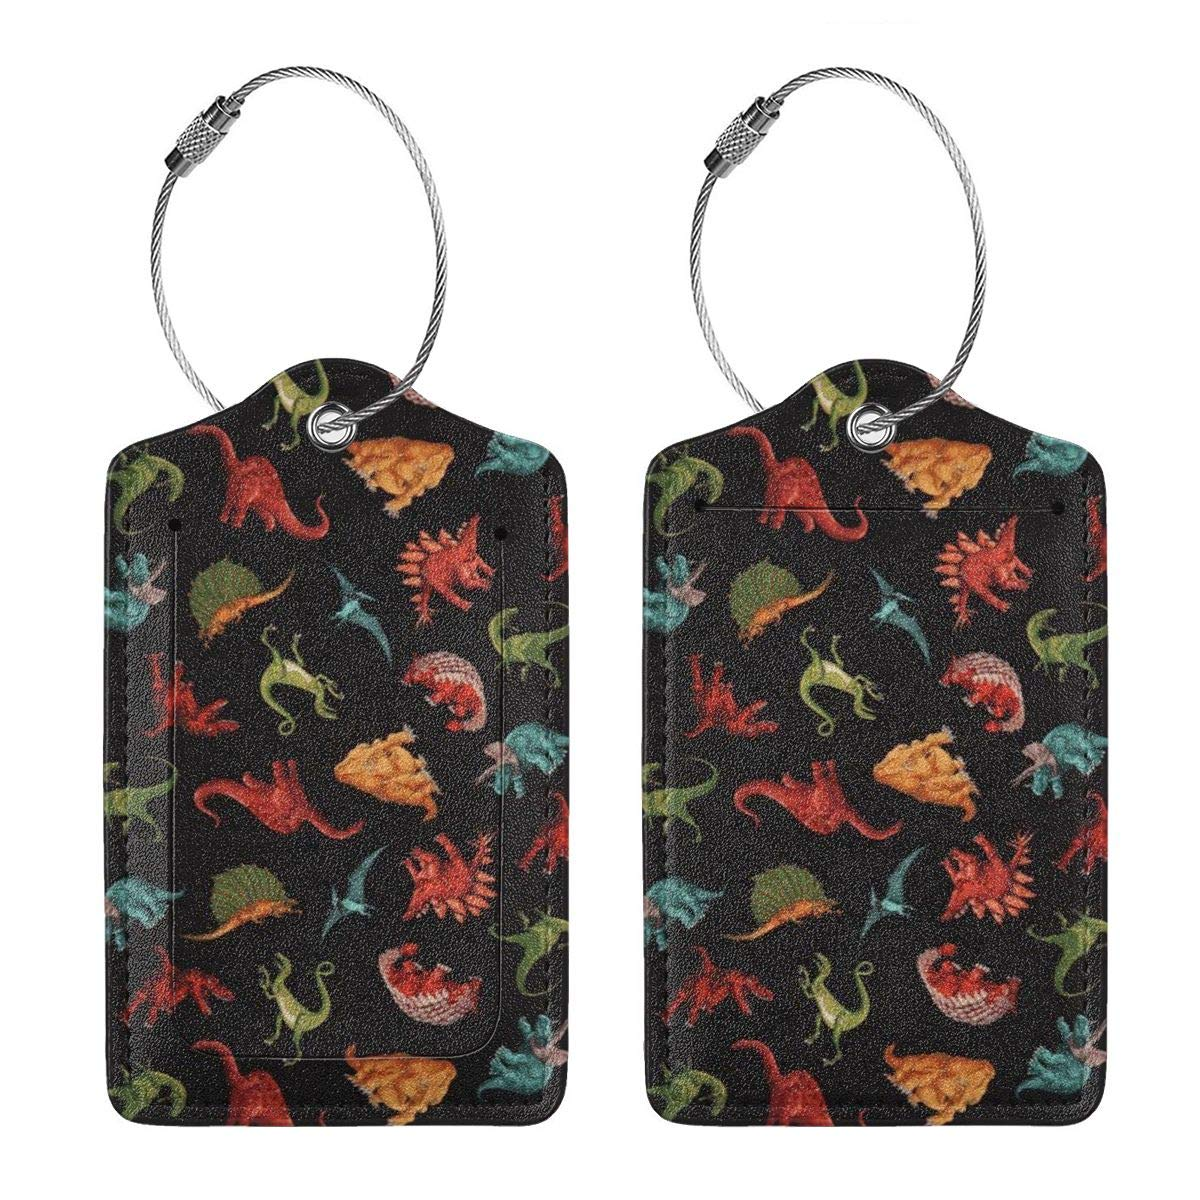 Cute Dinosaur Design Luggage Tag Label Travel Bag Label With Privacy Cover Luggage Tag Leather Personalized Suitcase Tag Travel Accessories